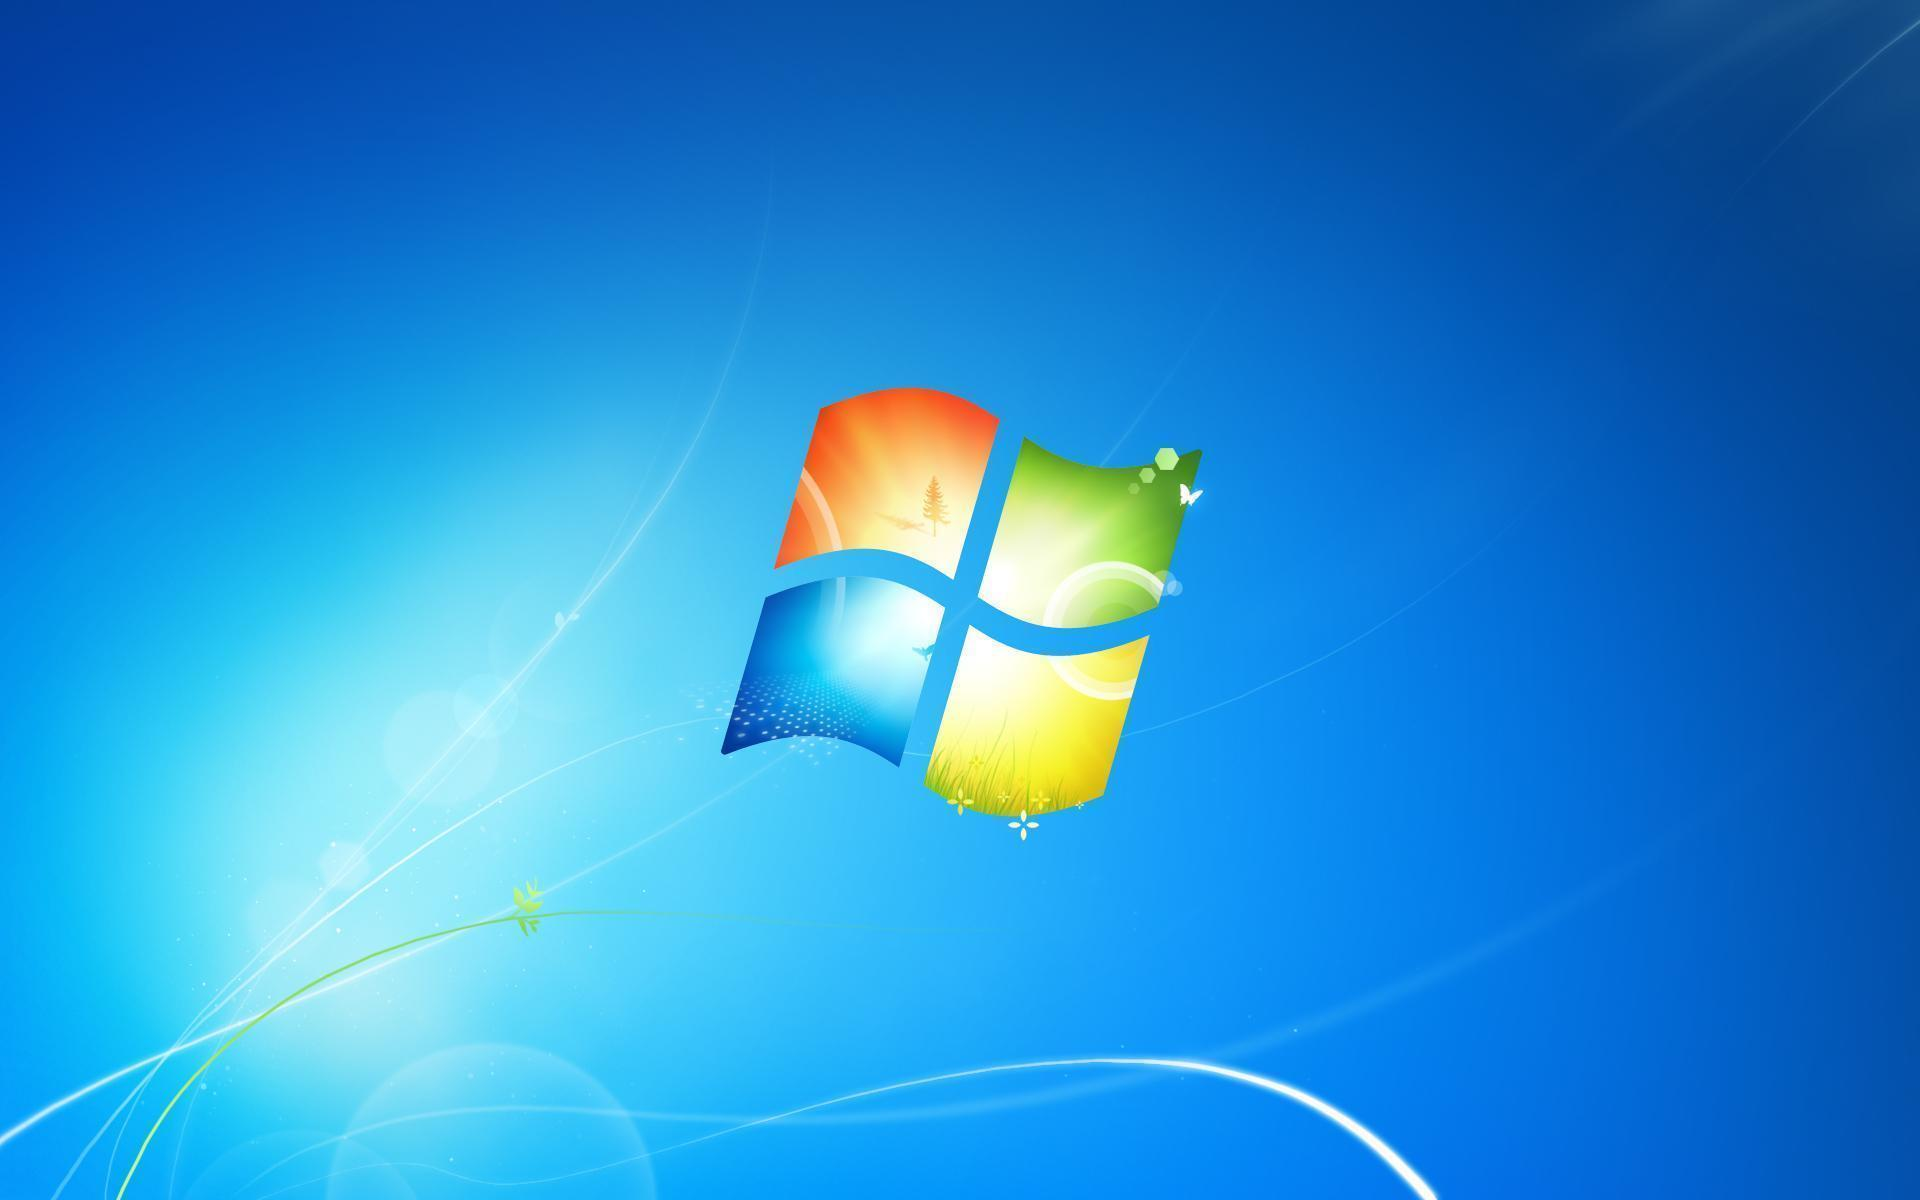 Windows 7 has a new default wallpapers and logo